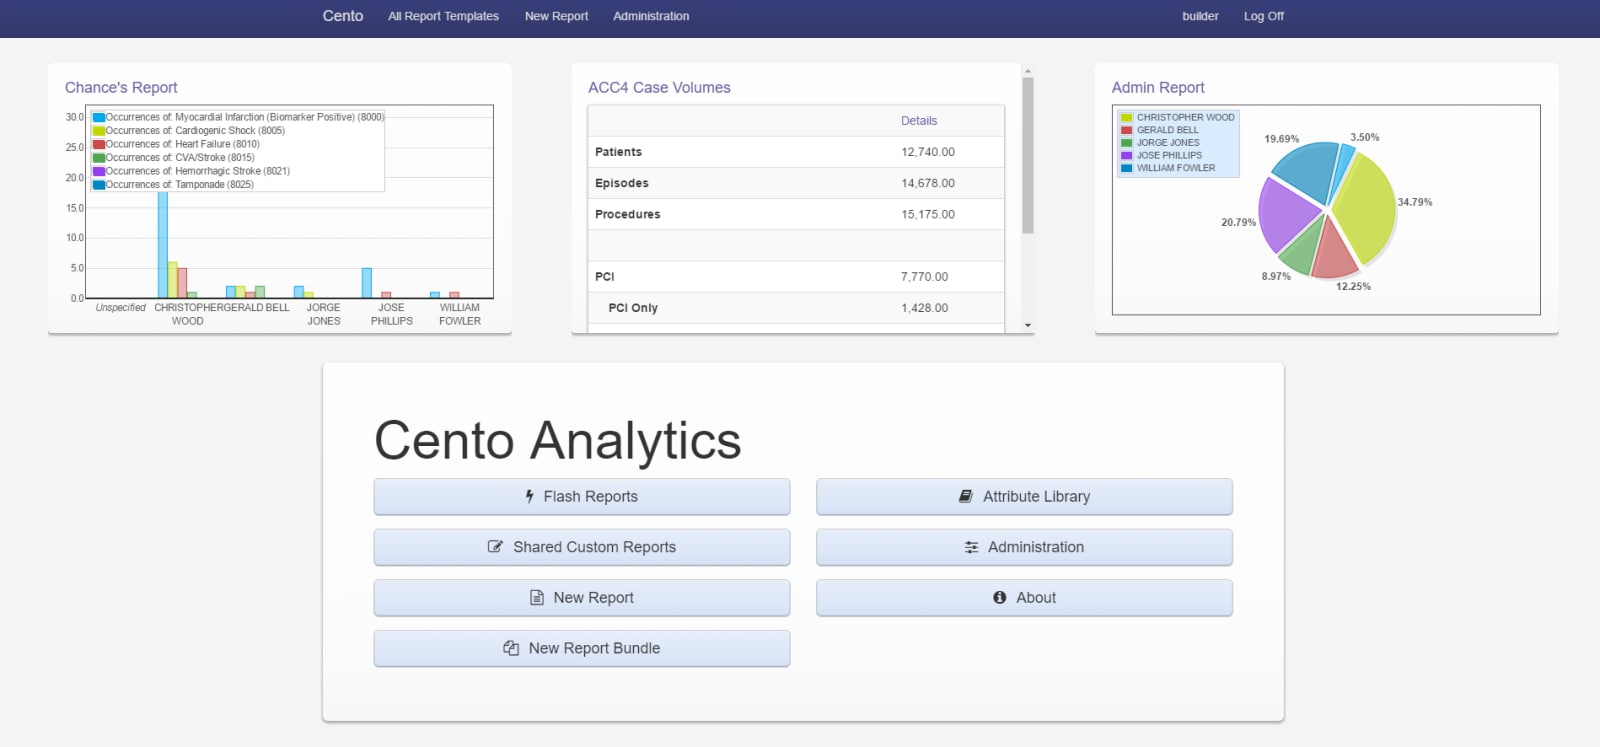 Cento Analytics Dashboard